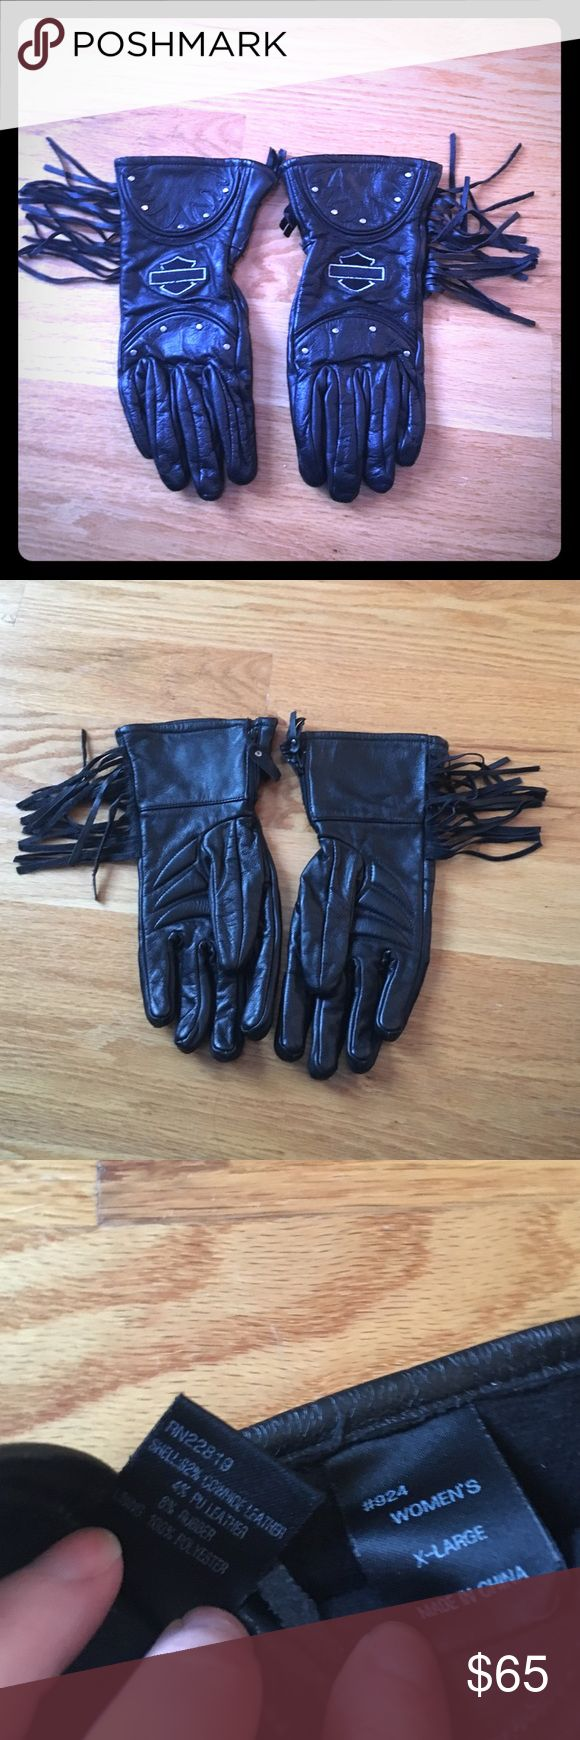 Diavolo leather motorcycle gloves - Womens Xl Lined Motorcycle Gloves